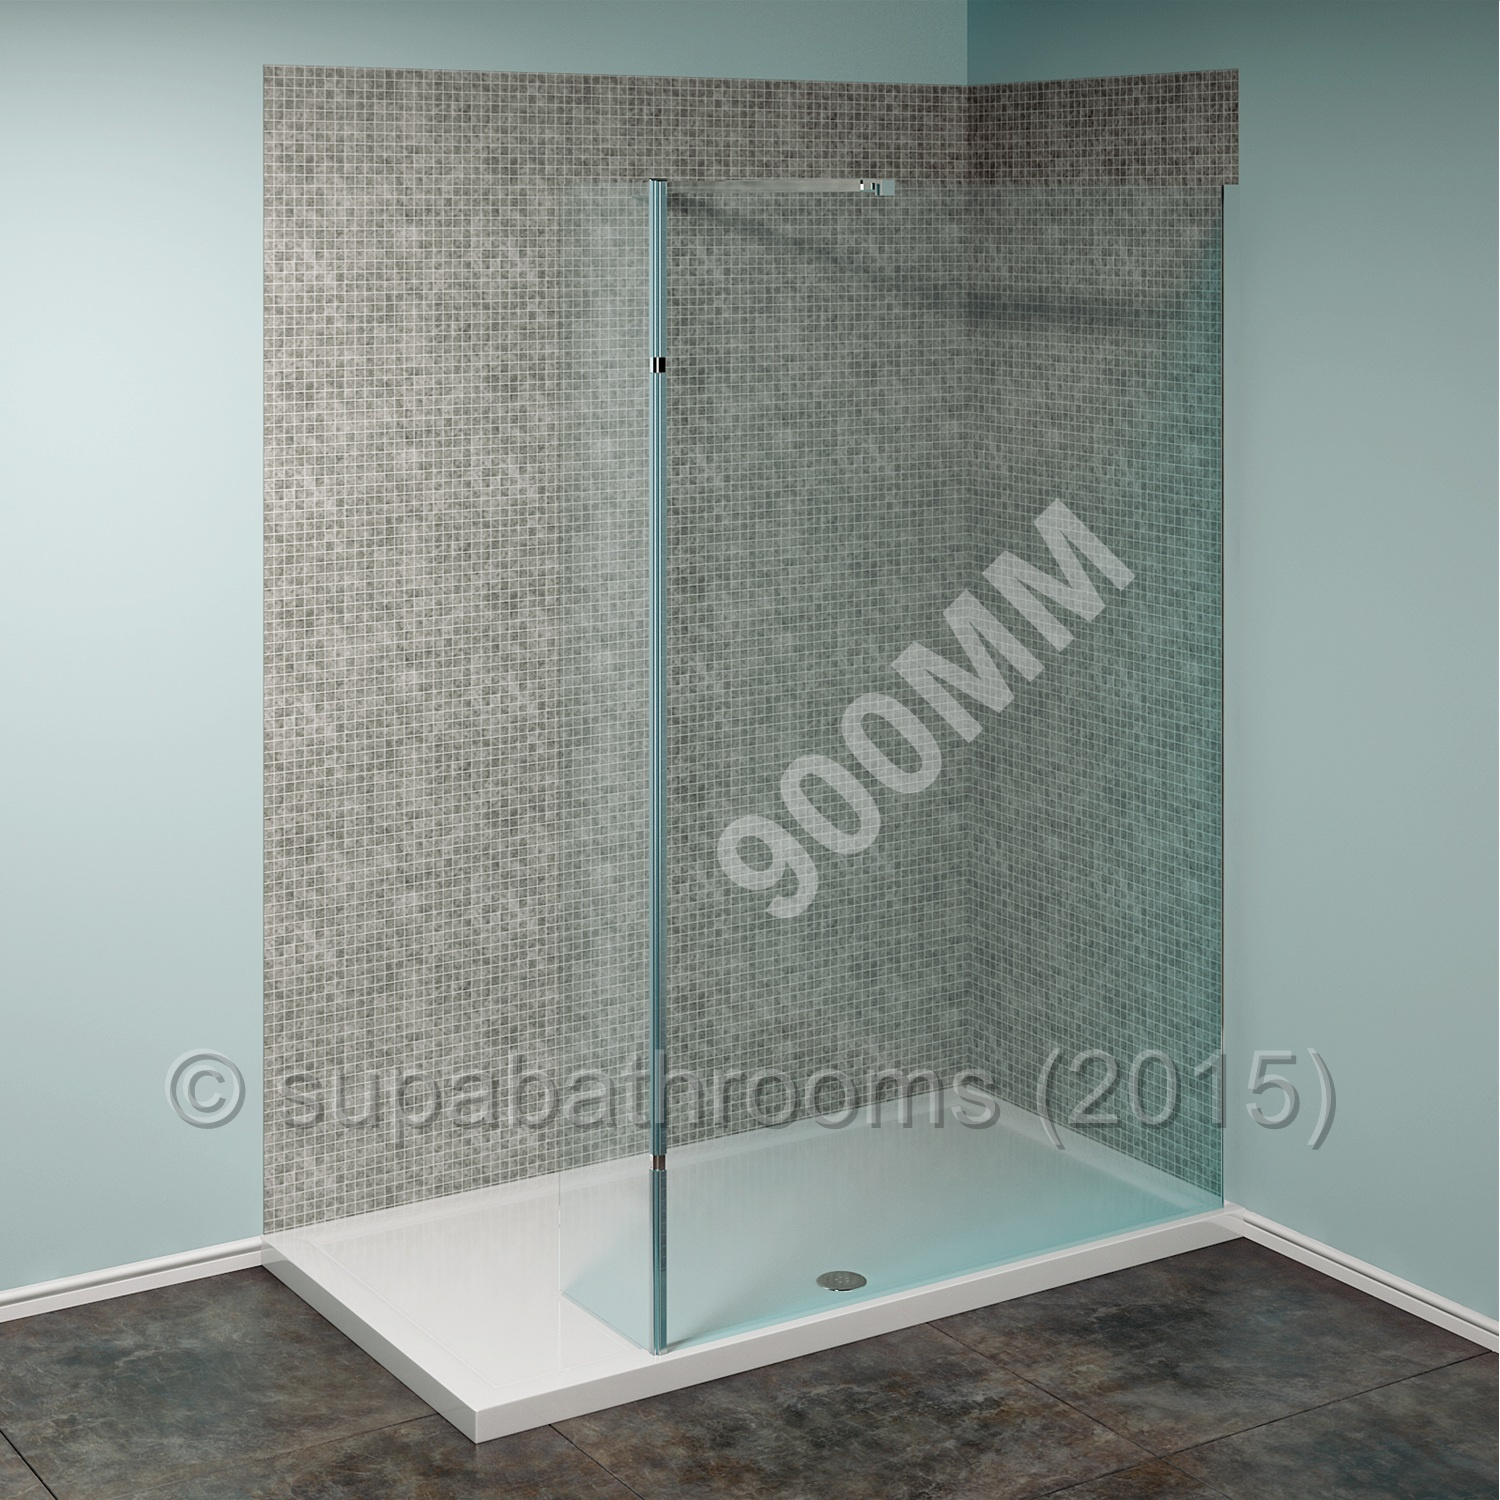 Ebay Shower Screen Ebay Shower Screen  Home Design